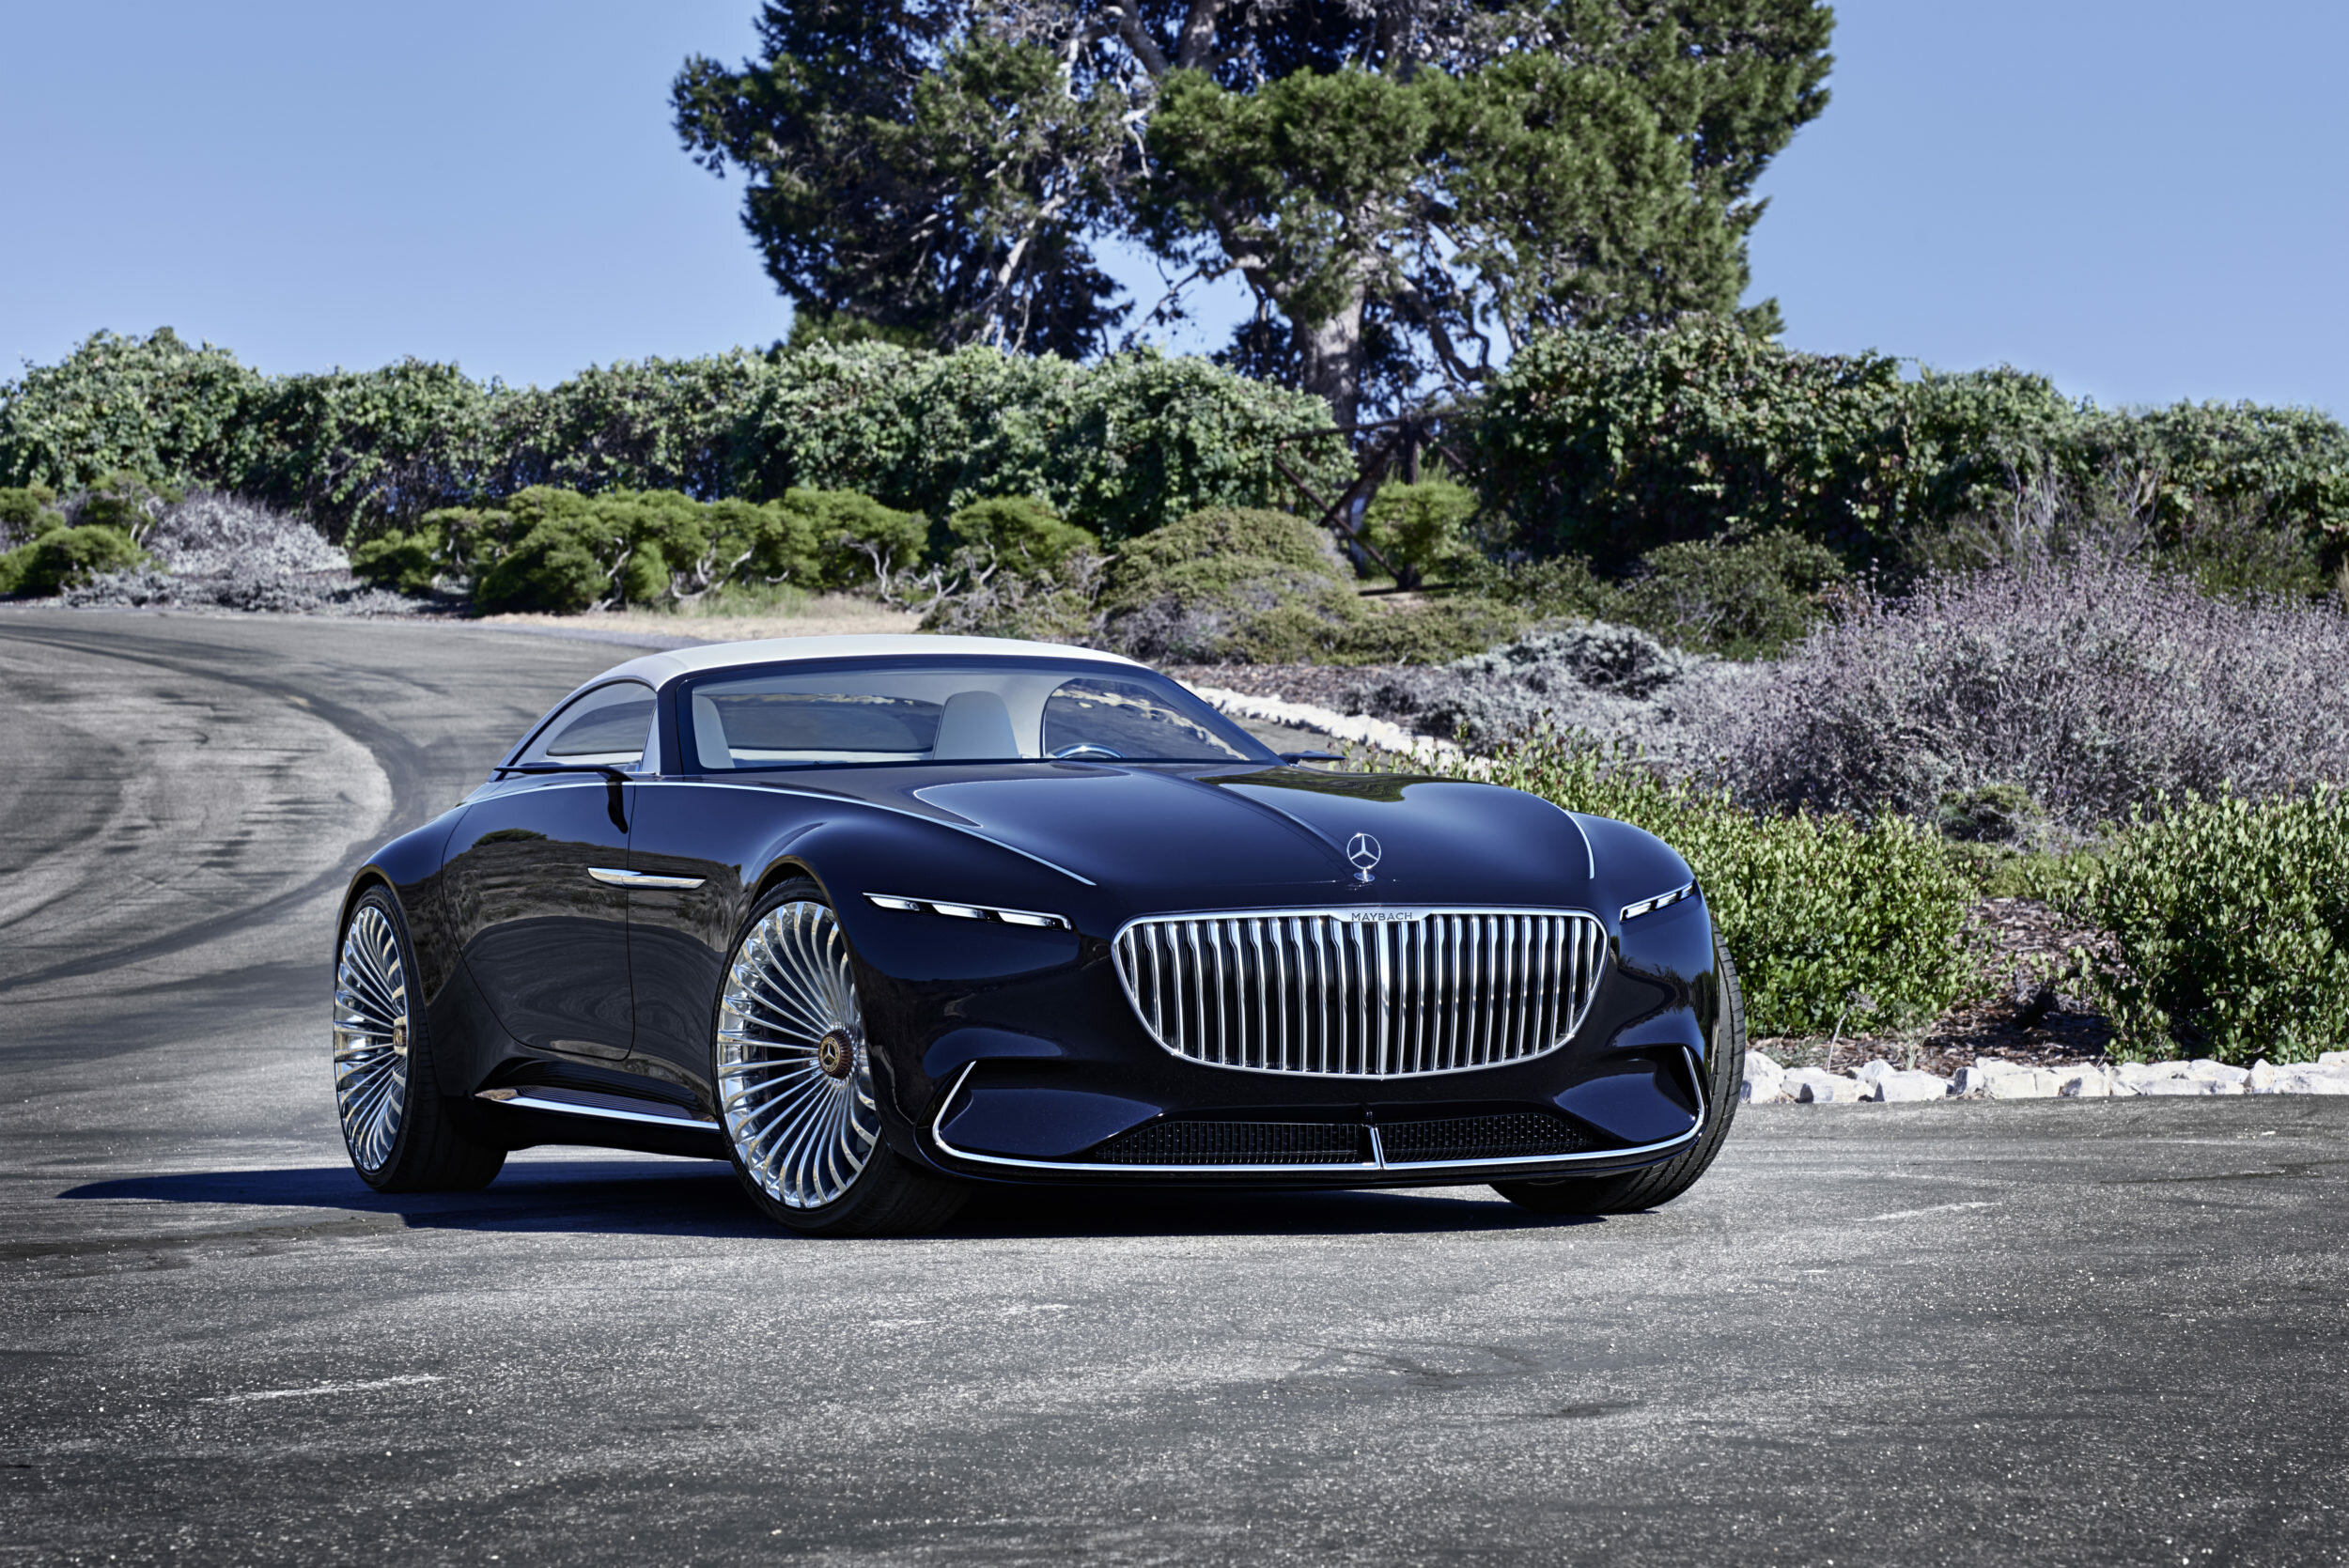 ba278293b8b This benefits the interpretation of the Mercedes-Maybach radiator grille,  which with its fine, vertical struts accentuates the front end.